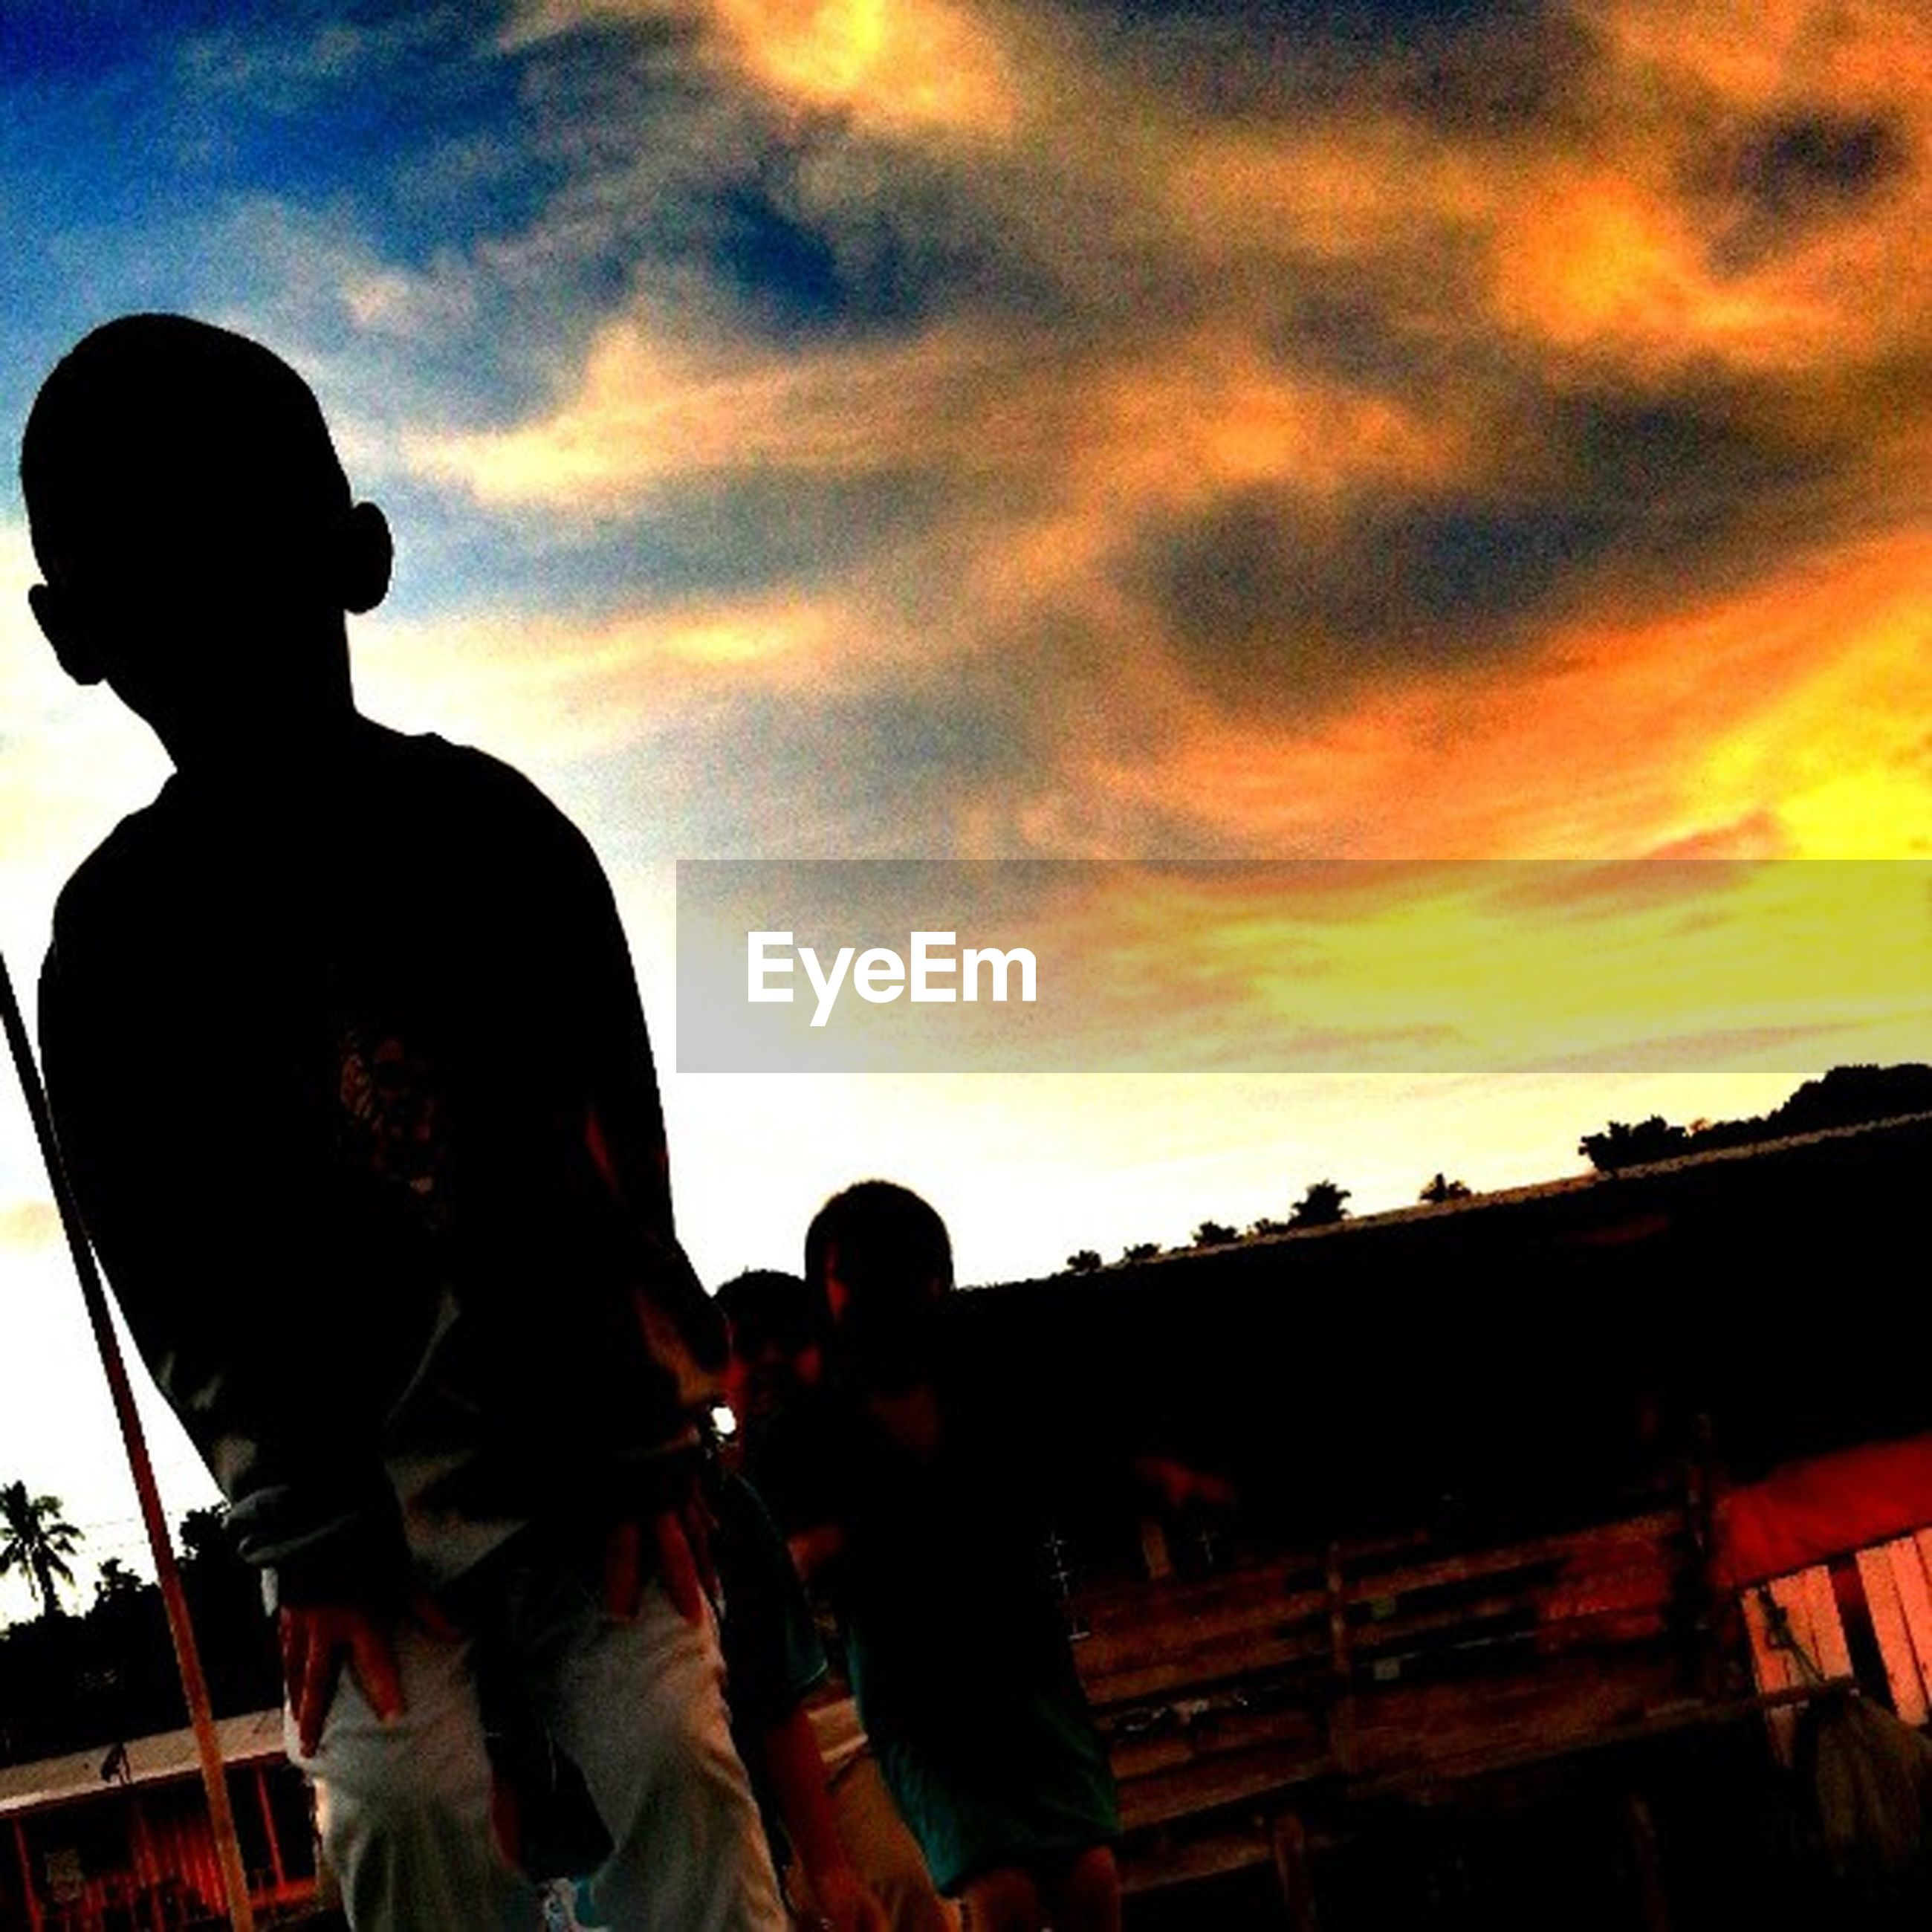 lifestyles, sky, sunset, leisure activity, cloud - sky, standing, silhouette, three quarter length, photography themes, waist up, photographing, togetherness, men, casual clothing, camera - photographic equipment, rear view, love